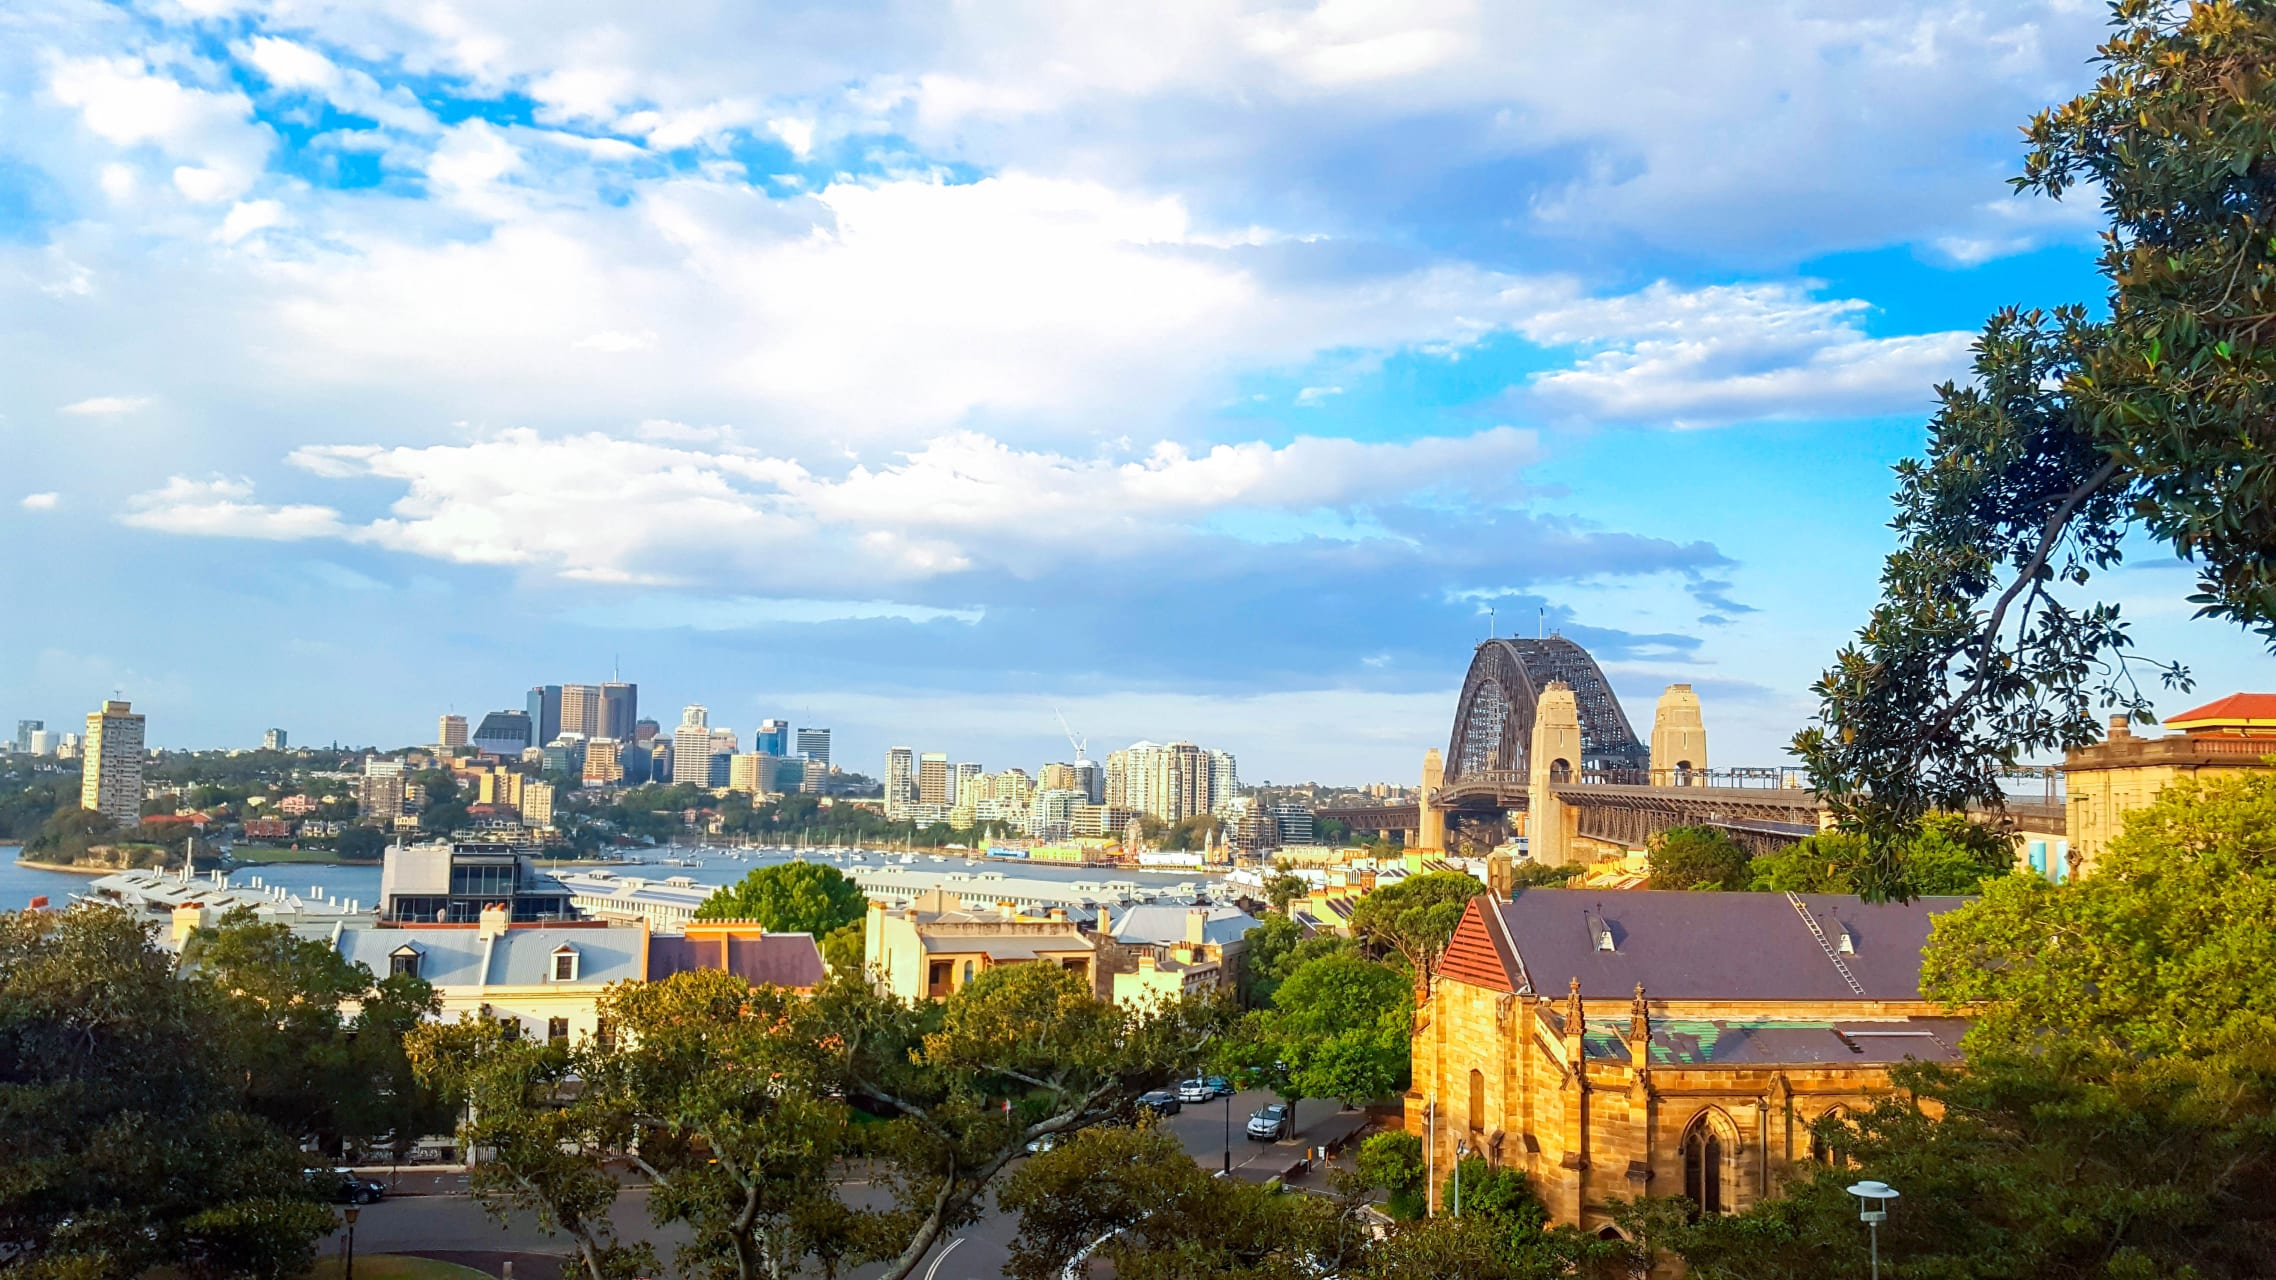 Sydney - From Sydney's Observatory Hill to the Harbour – Agar Steps Route